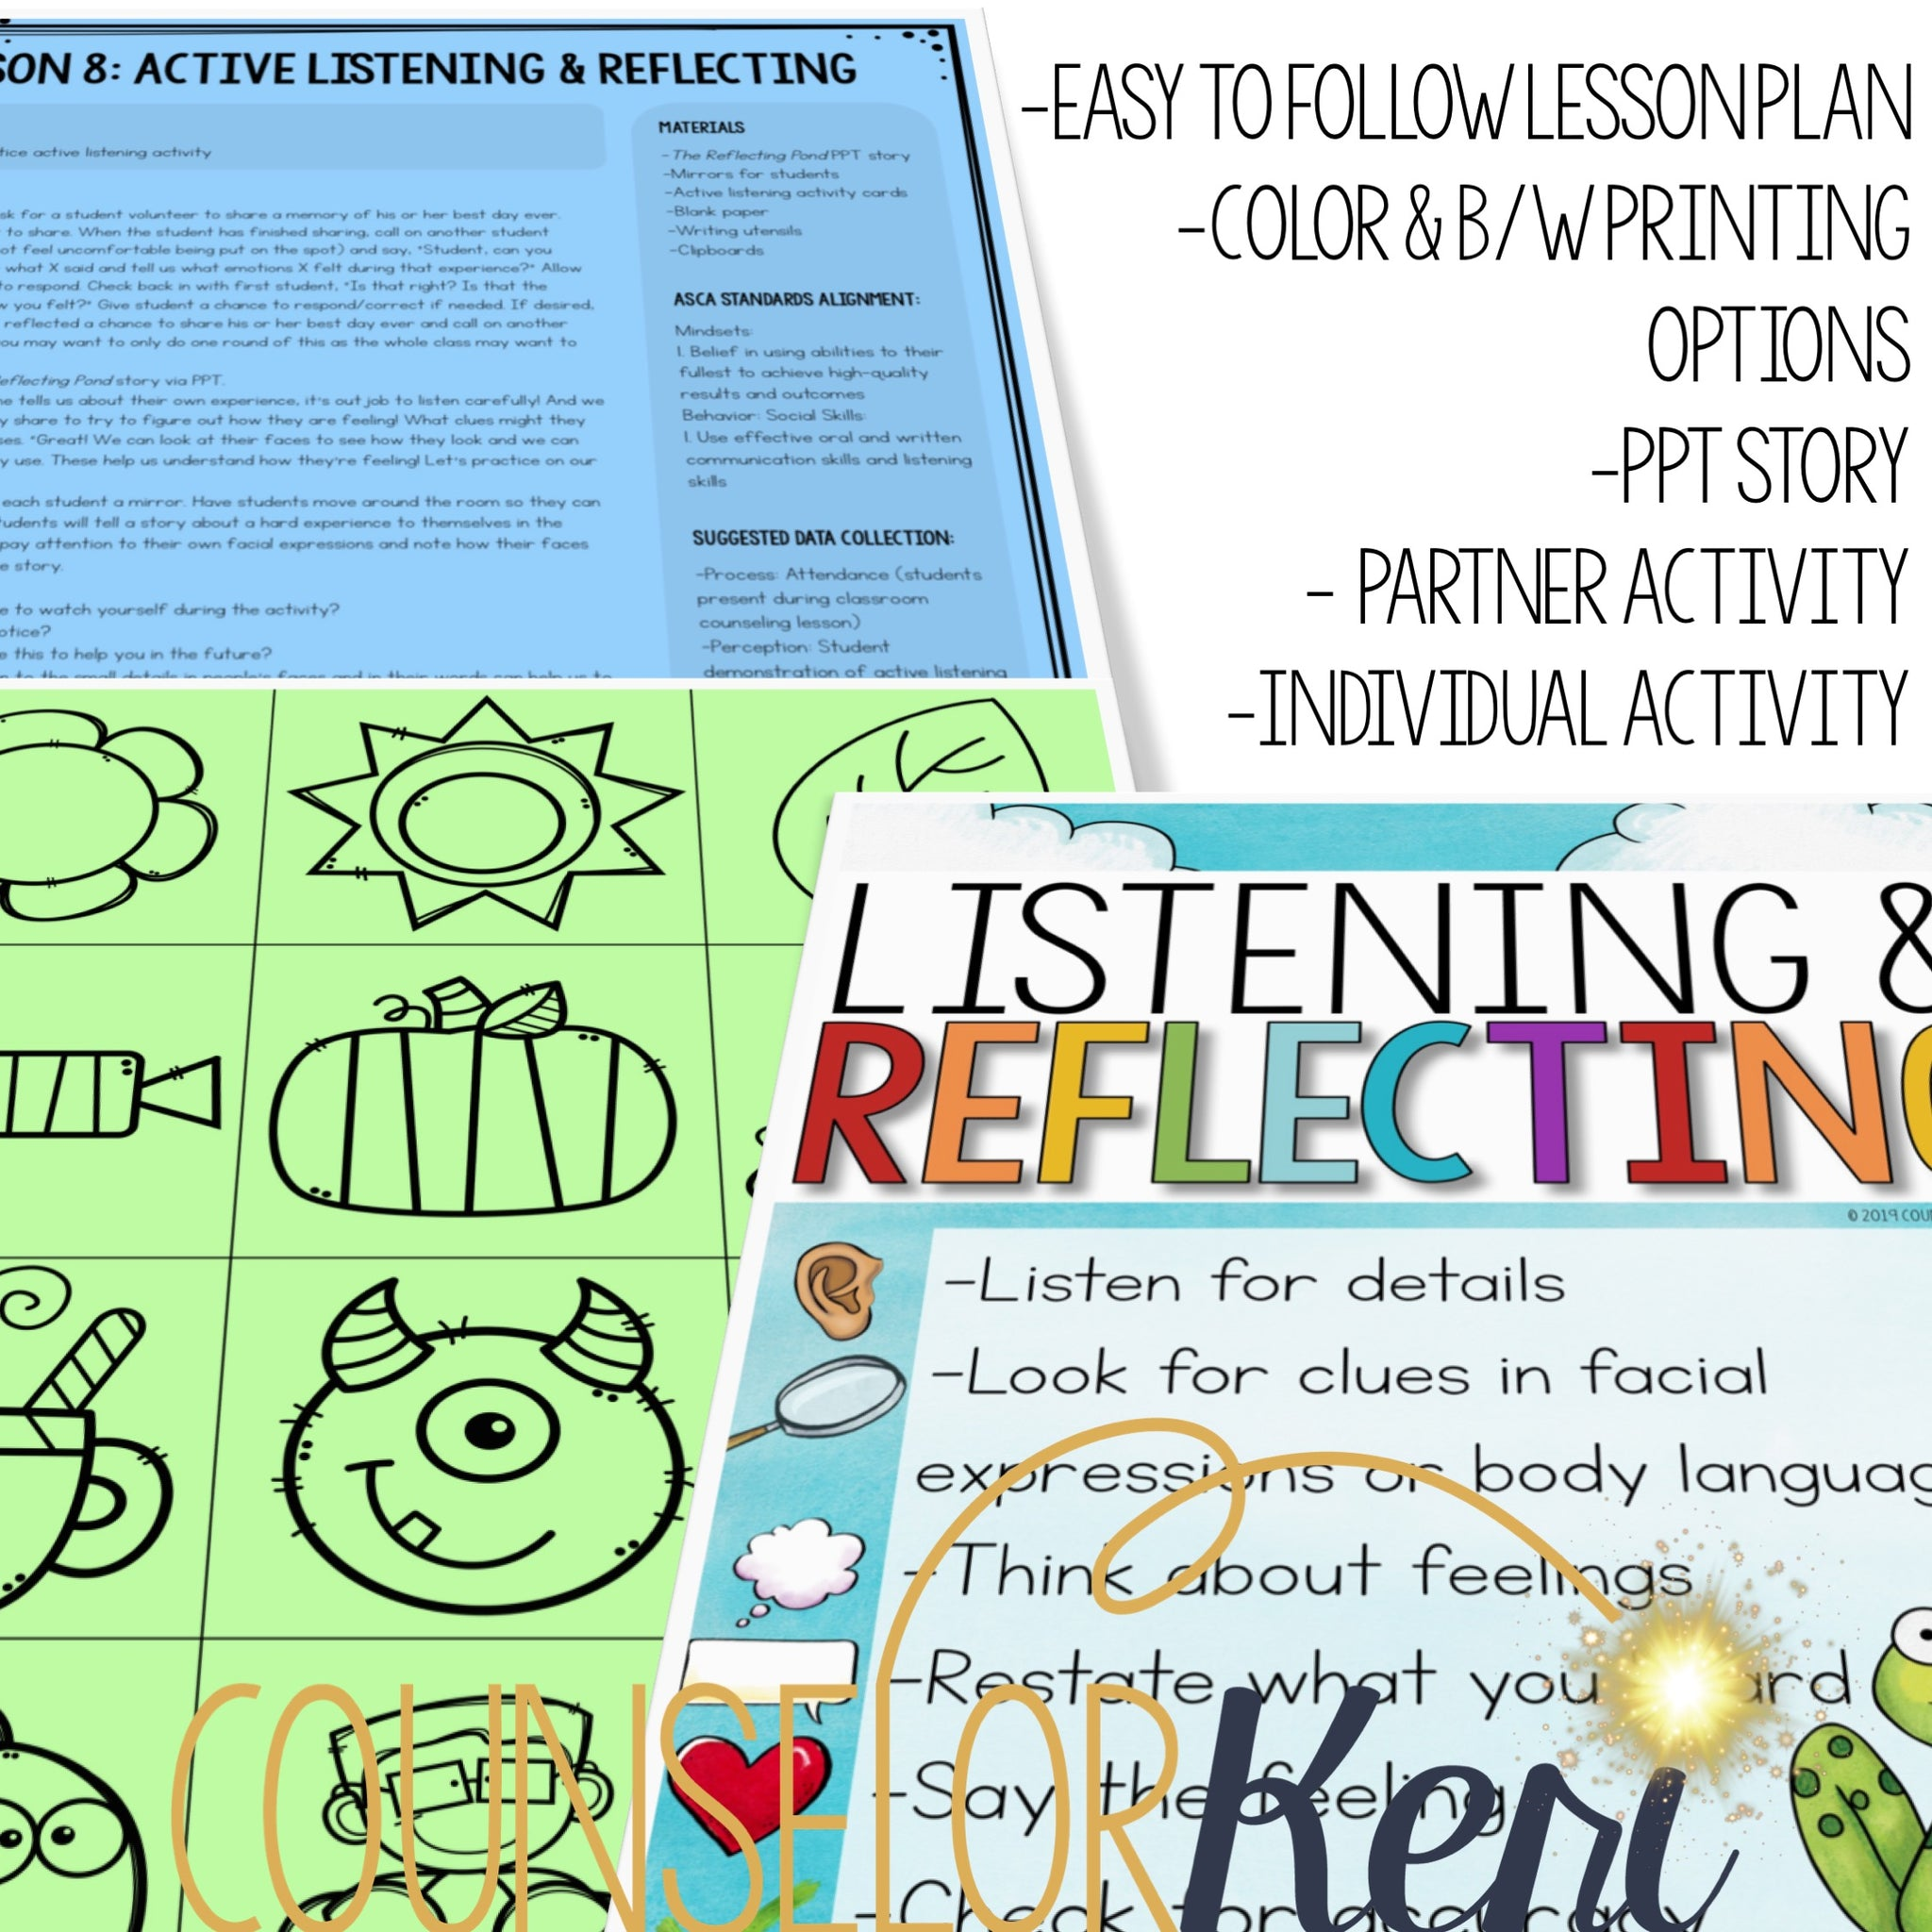 Active Listening & Reflecting Classroom Guidance Lesson for Conflict